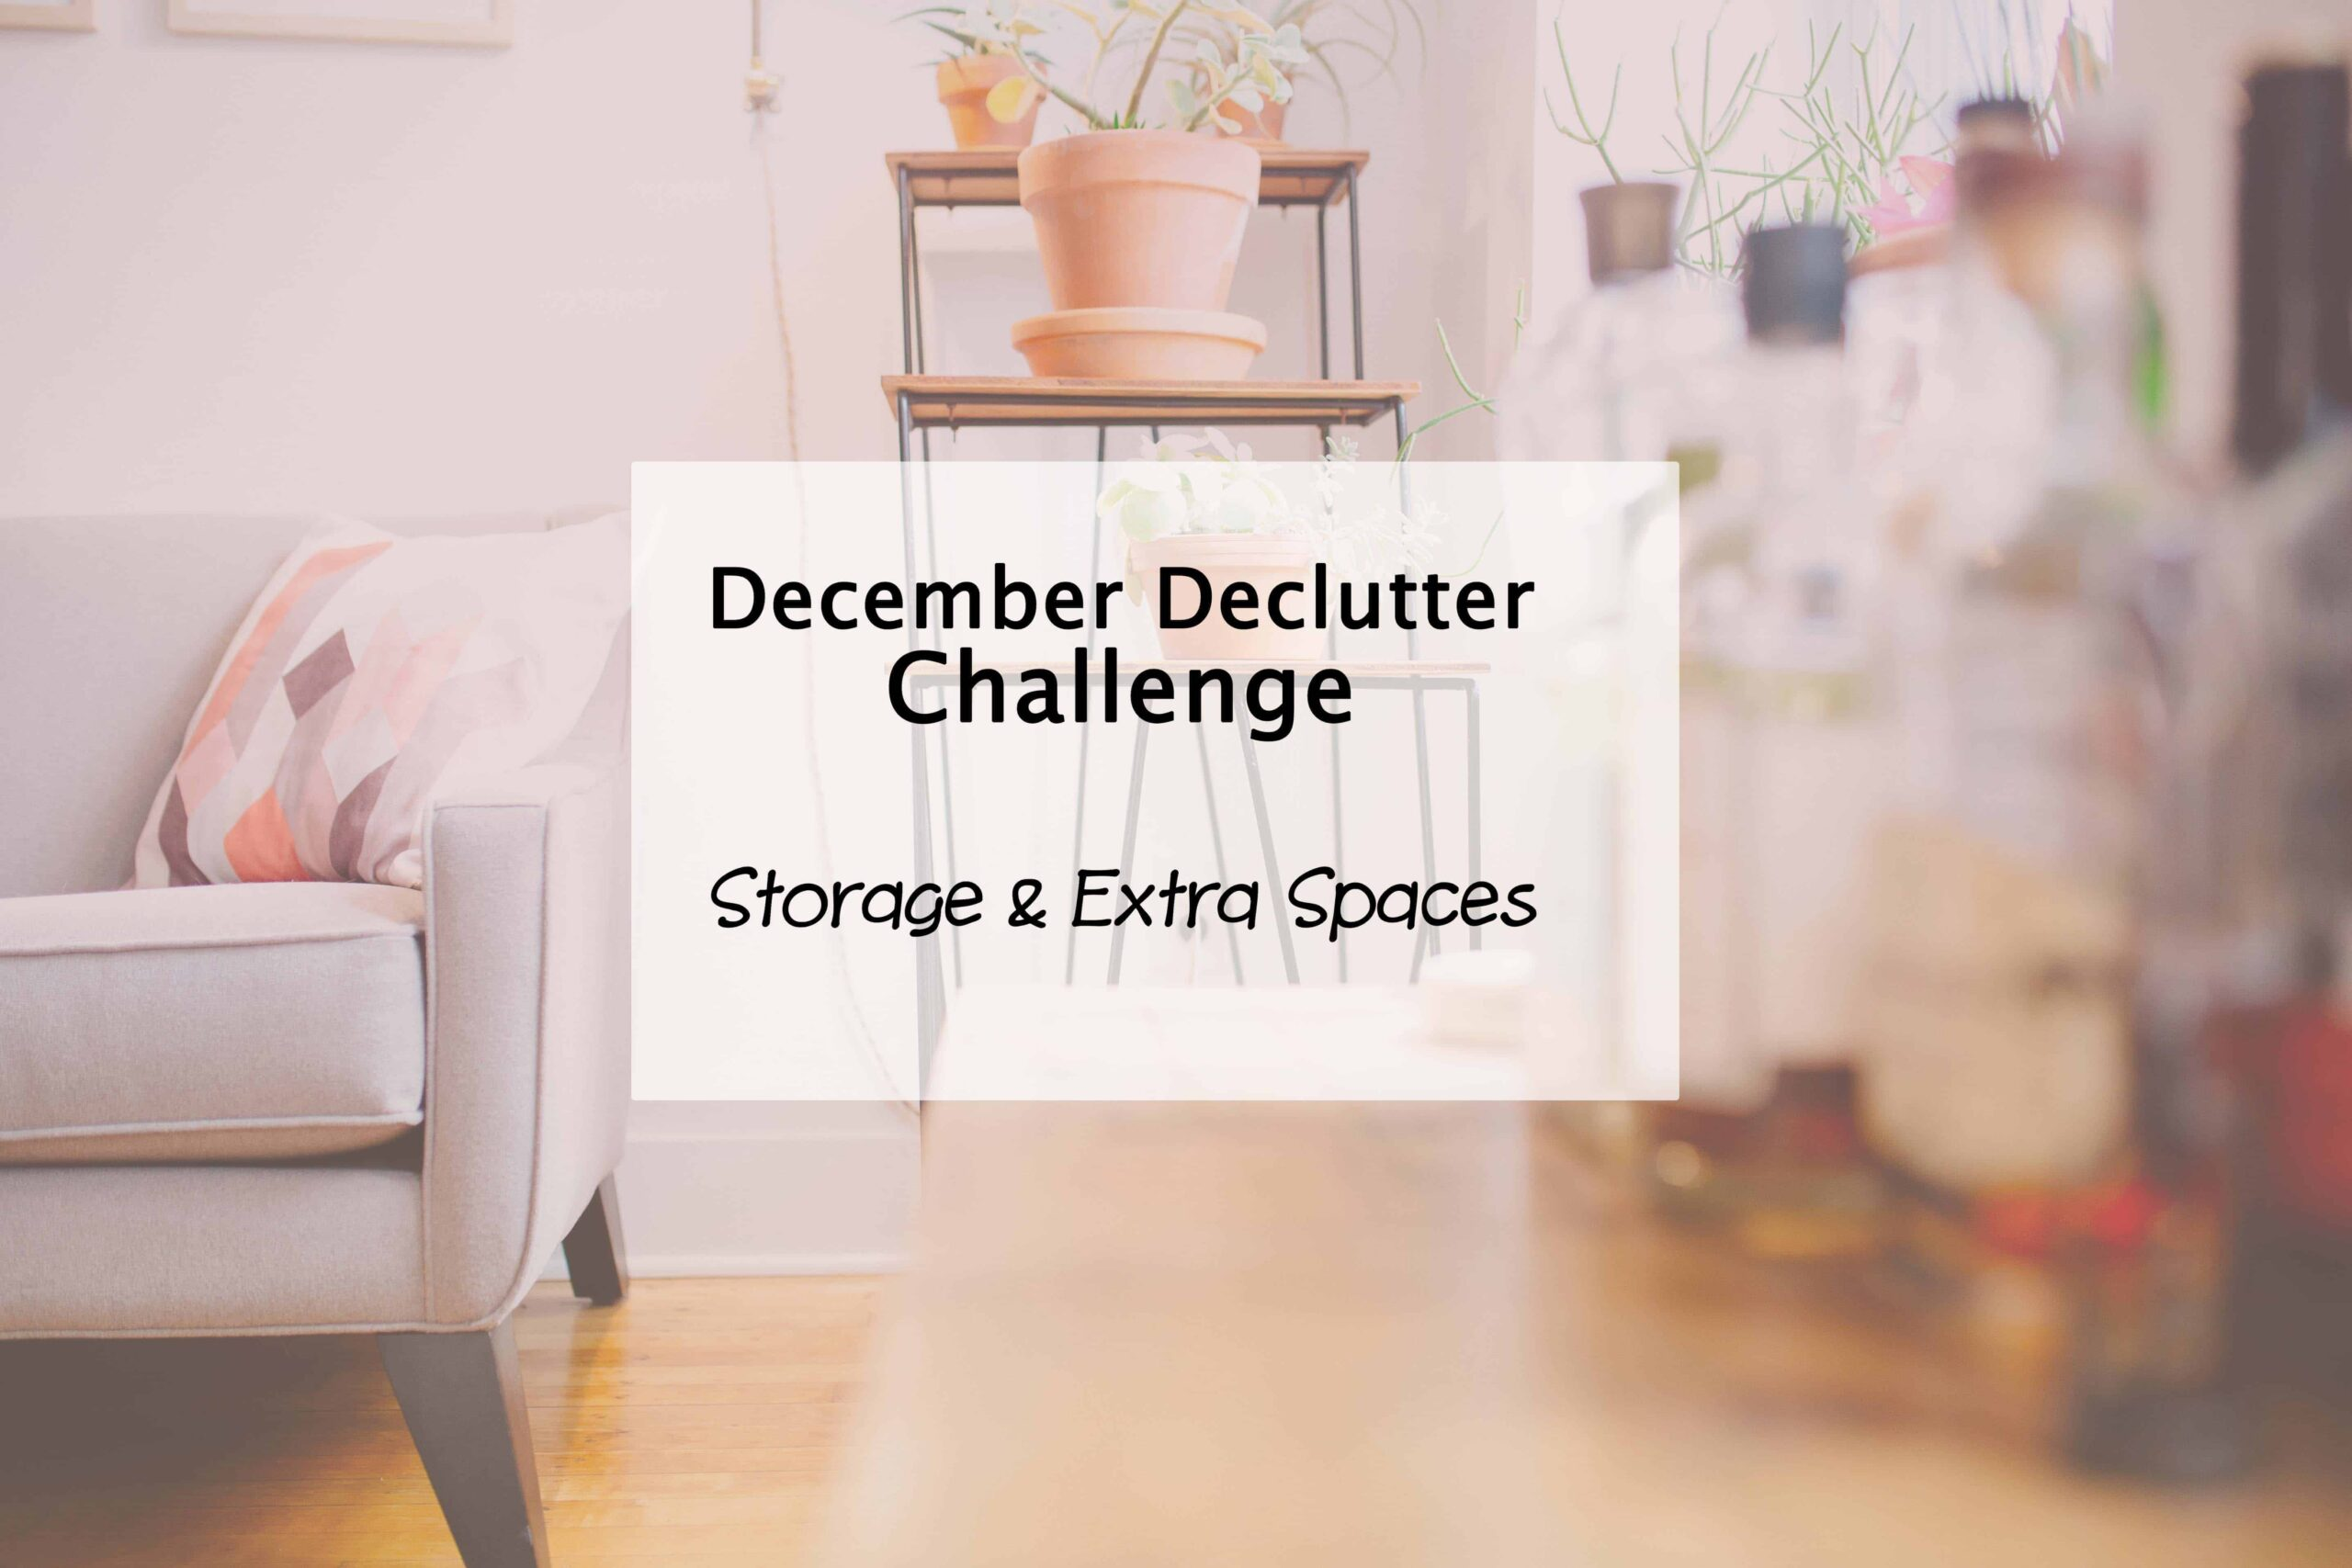 December declutter storage and extra spaces scaled